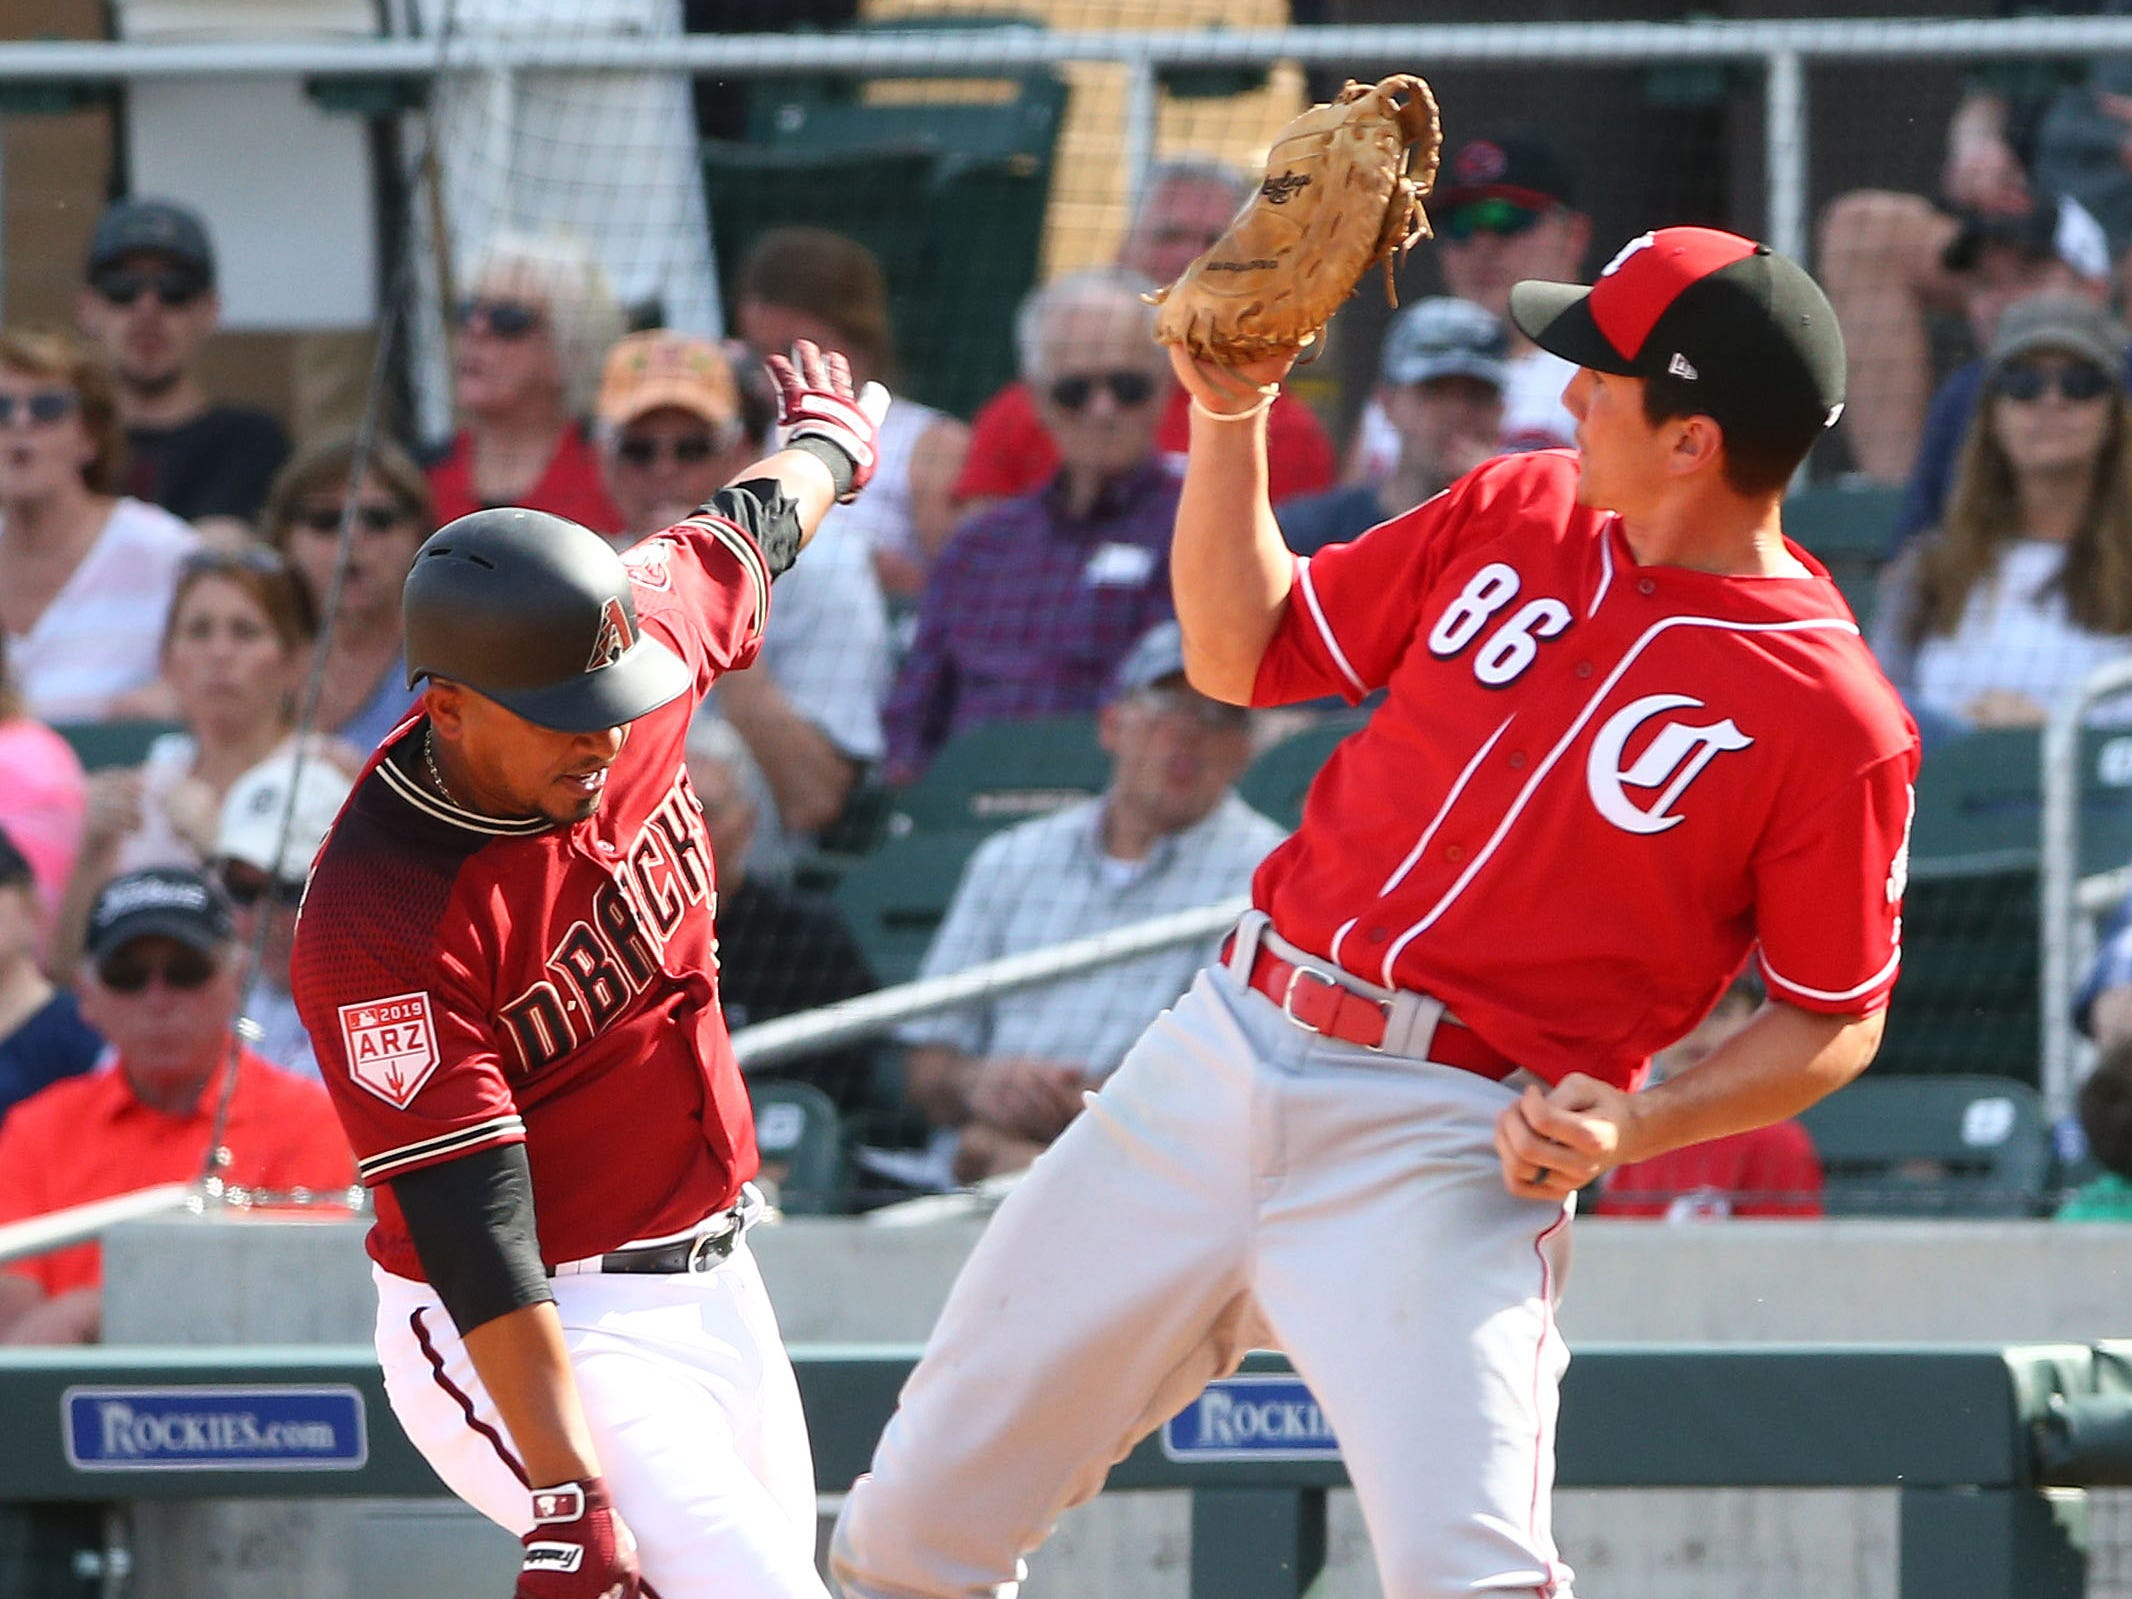 Arizona Diamondbacks Eduardo Escobar trips over Cincinnati Reds first baseman Jordan Patterson (86) in the 5th inning during a spring training game on Mar. 4, 2019, at Salt River Fields in Scottsdale, Ariz.